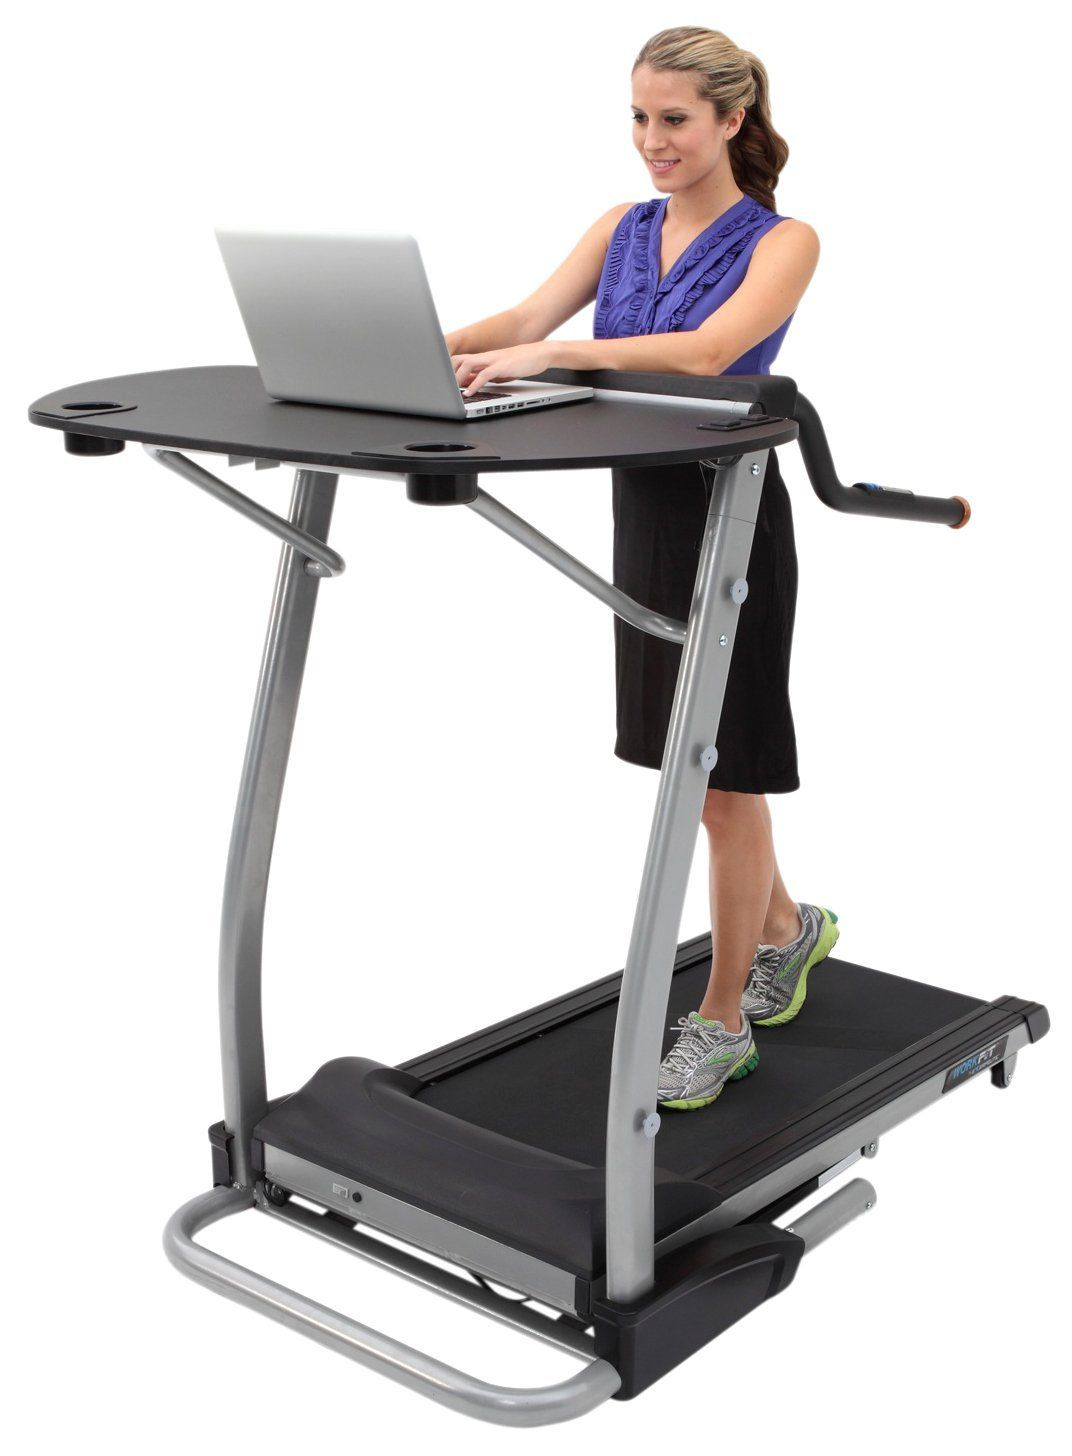 Small Treadmill For Desk New Living Room Set Check More At Http